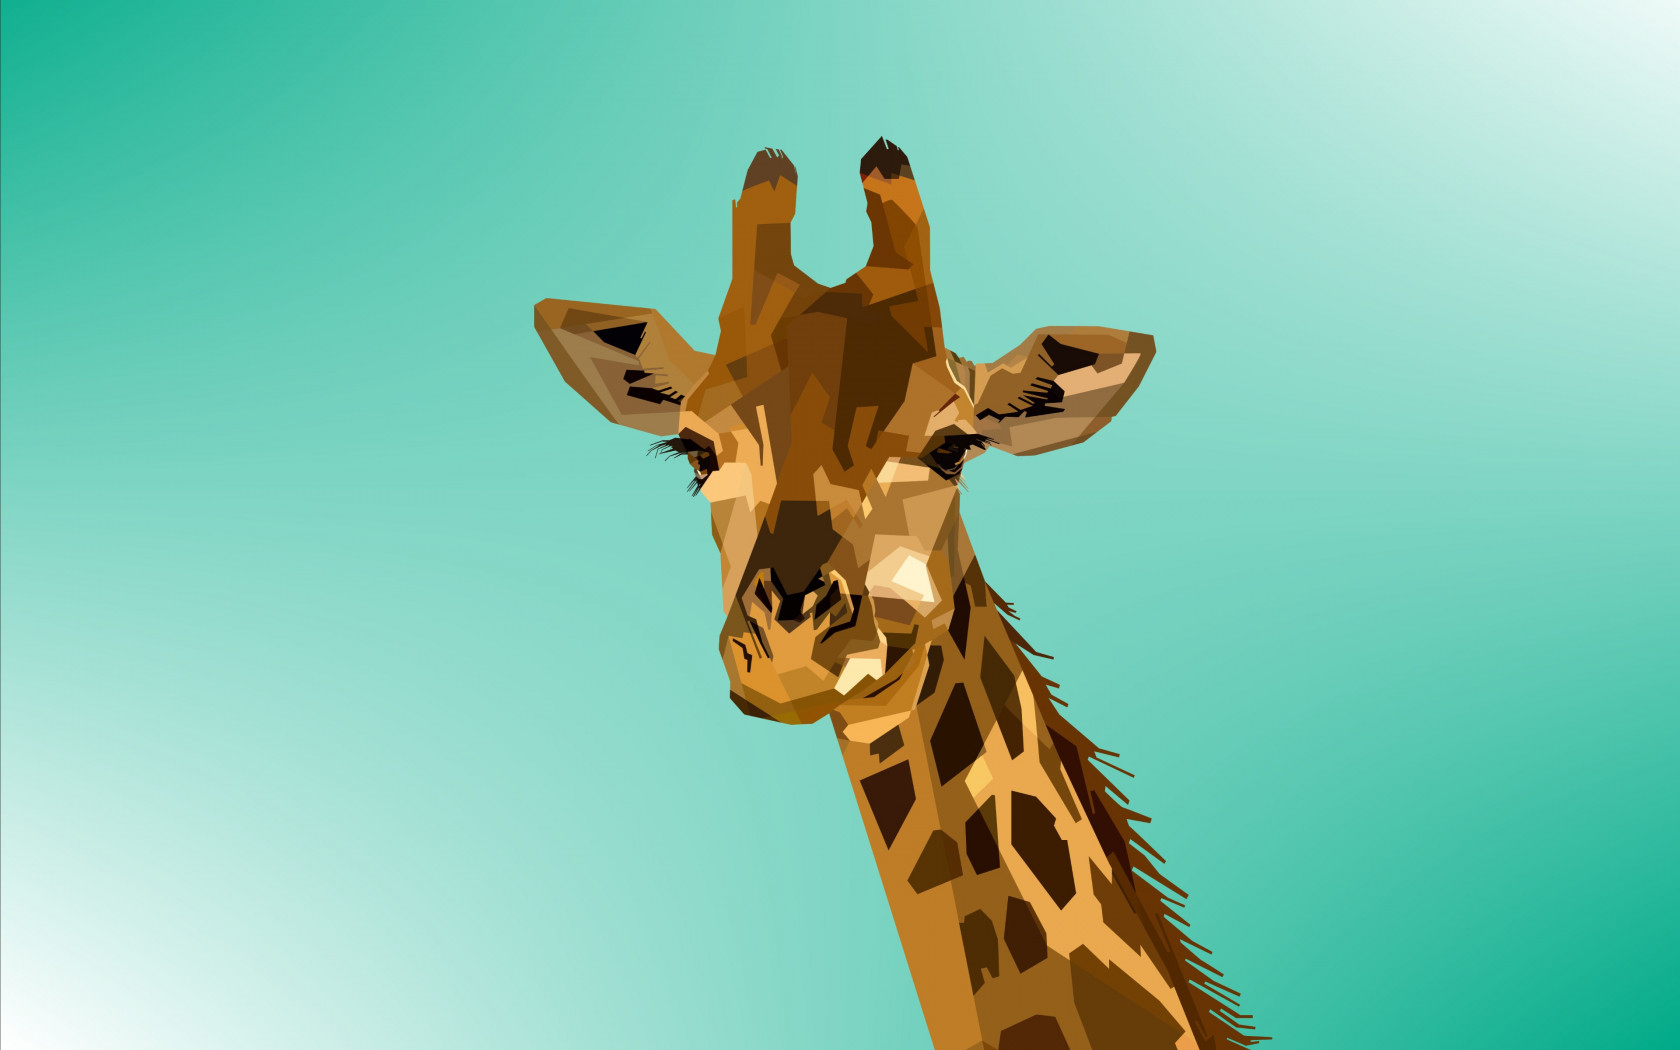 Digital drawing of a giraffe wallpaper 1680x1050